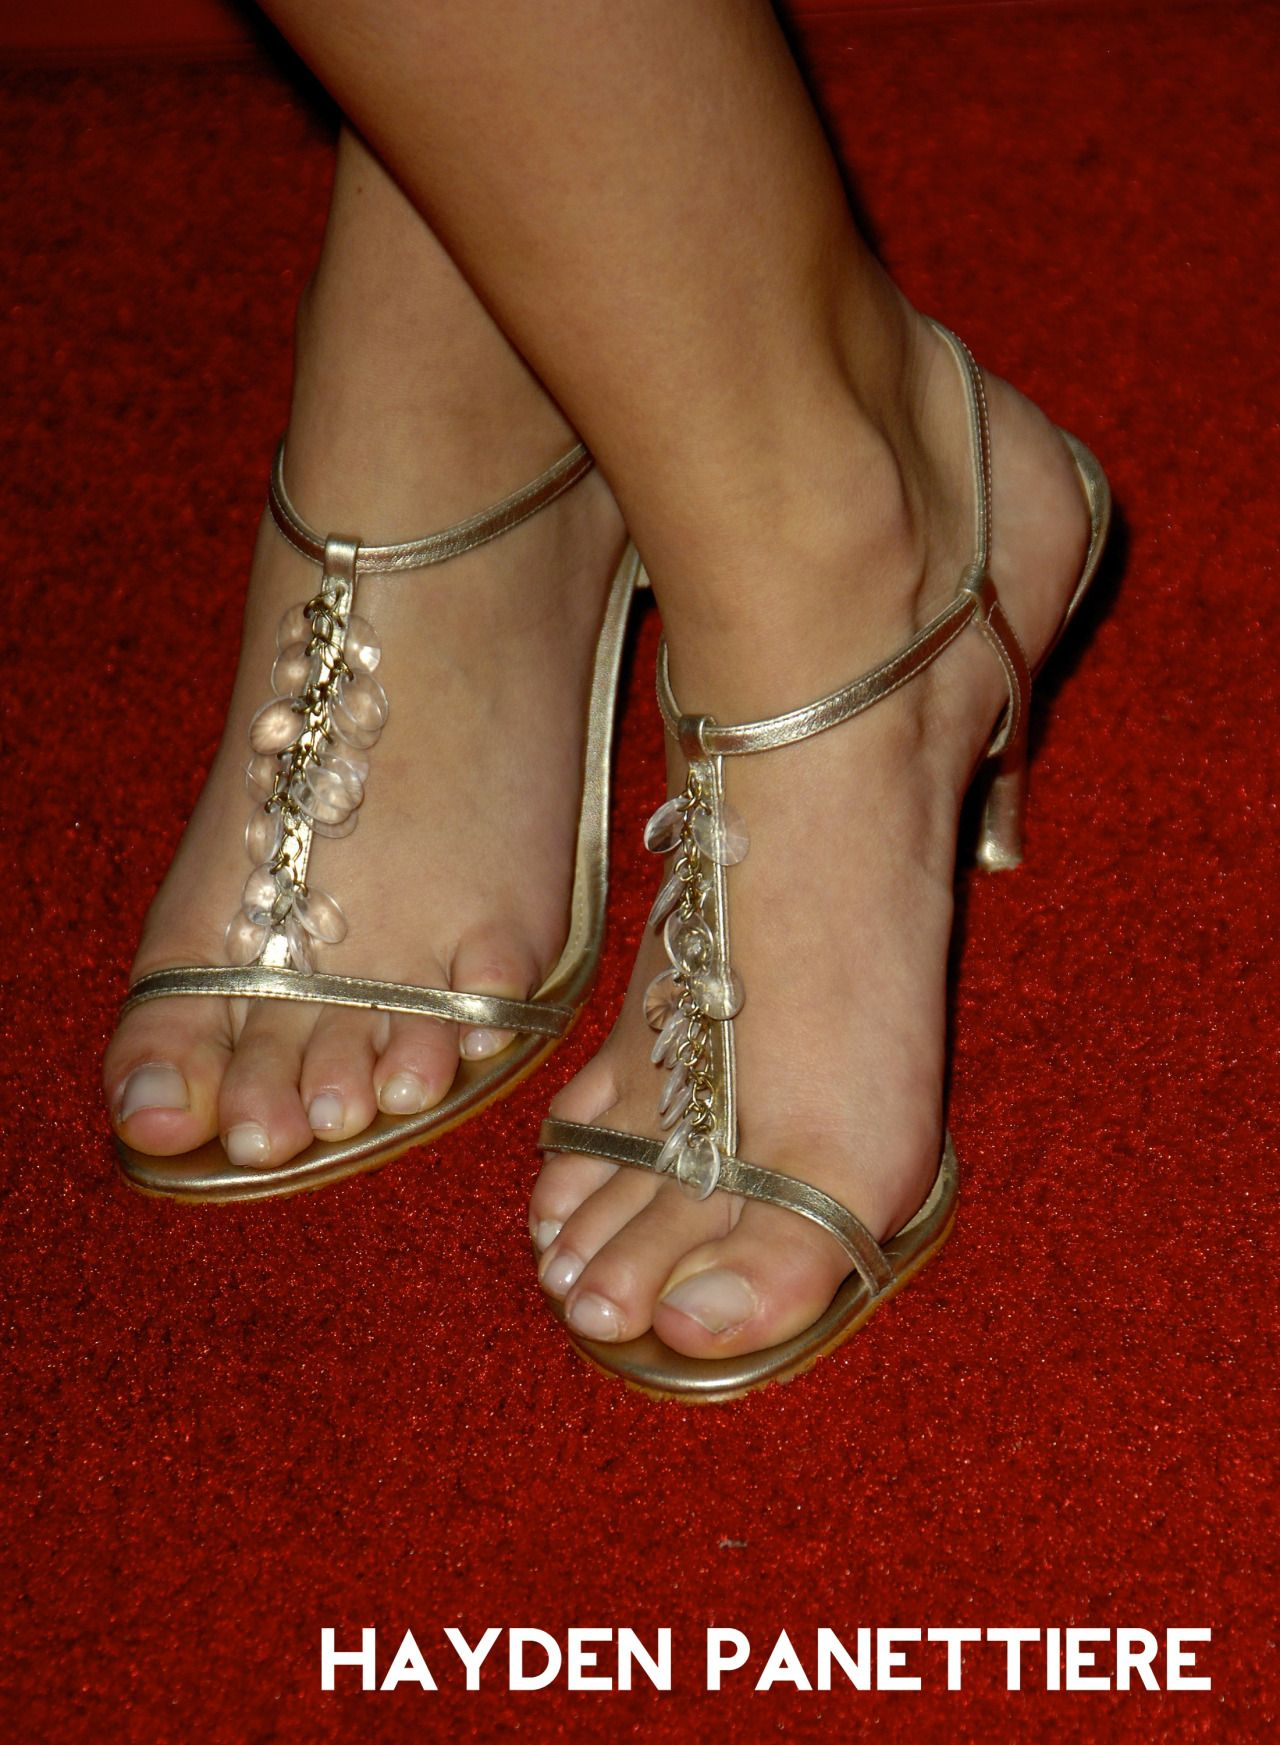 Sexiest Feet In The World